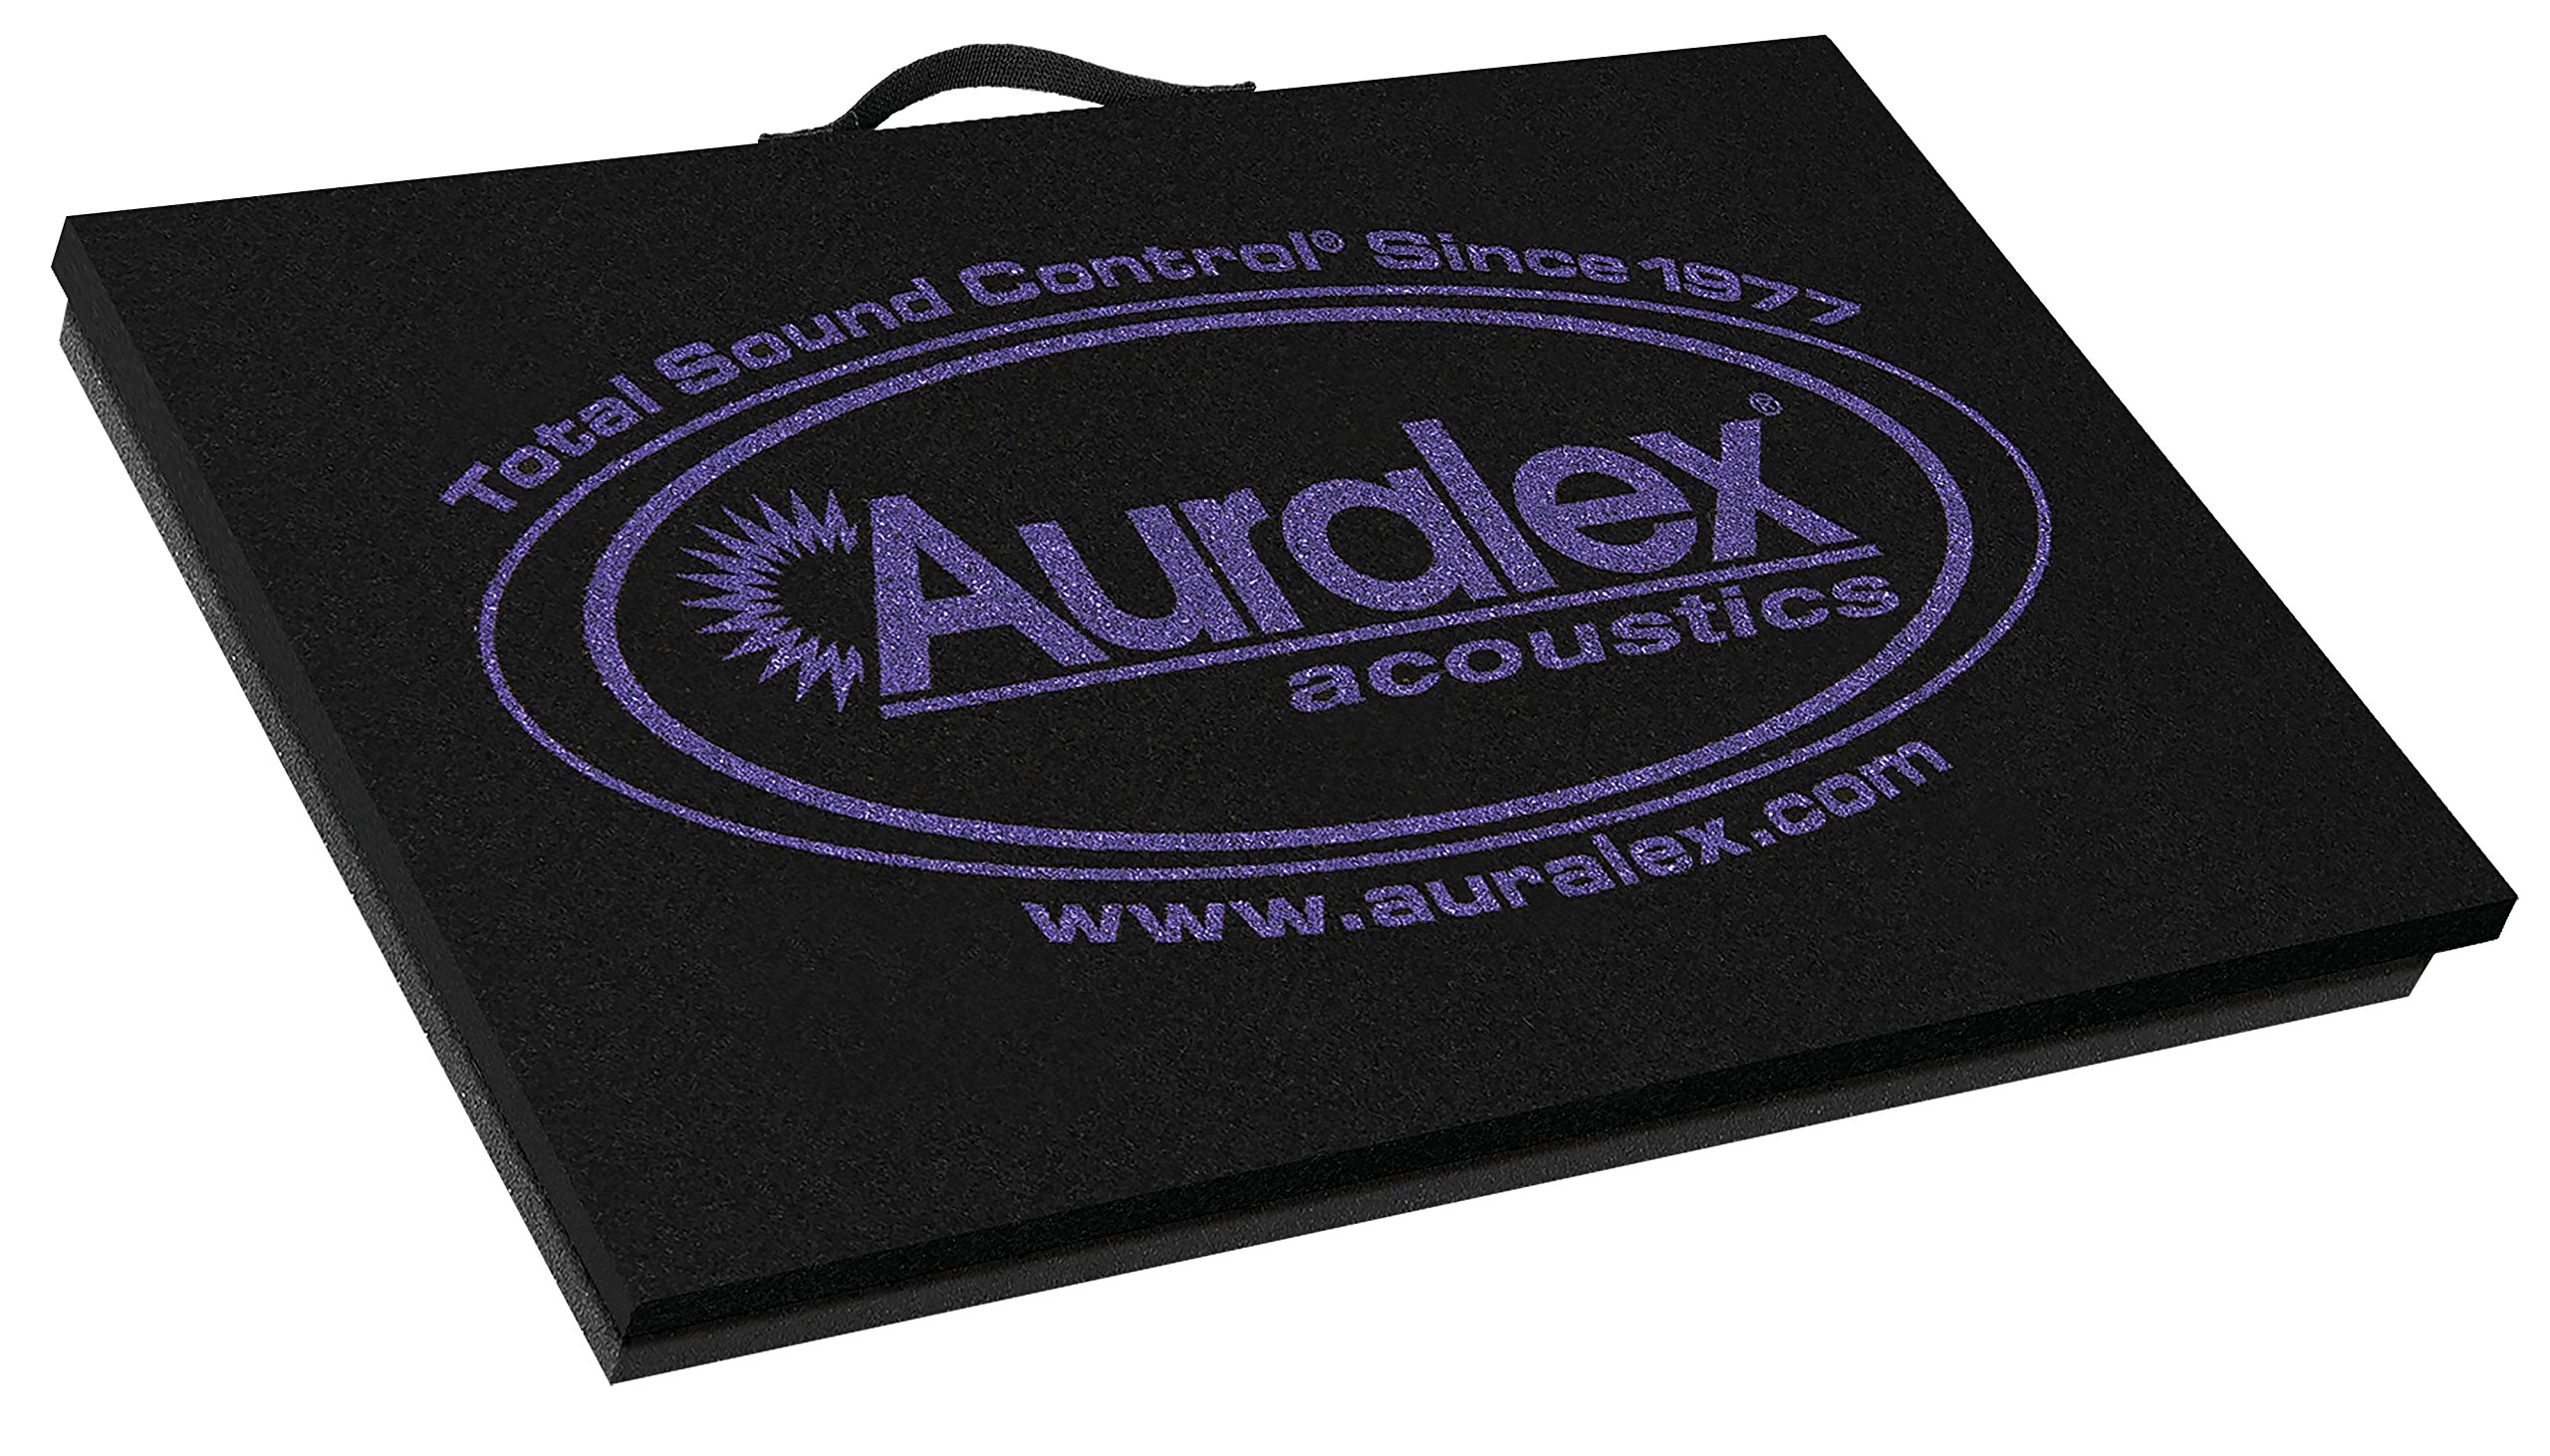 "Auralex Acoustics GRAMMA v2 Isolation Platform for Amplifiers, 7/4'' x 15"" x 23"" by Auralex Acoustics"